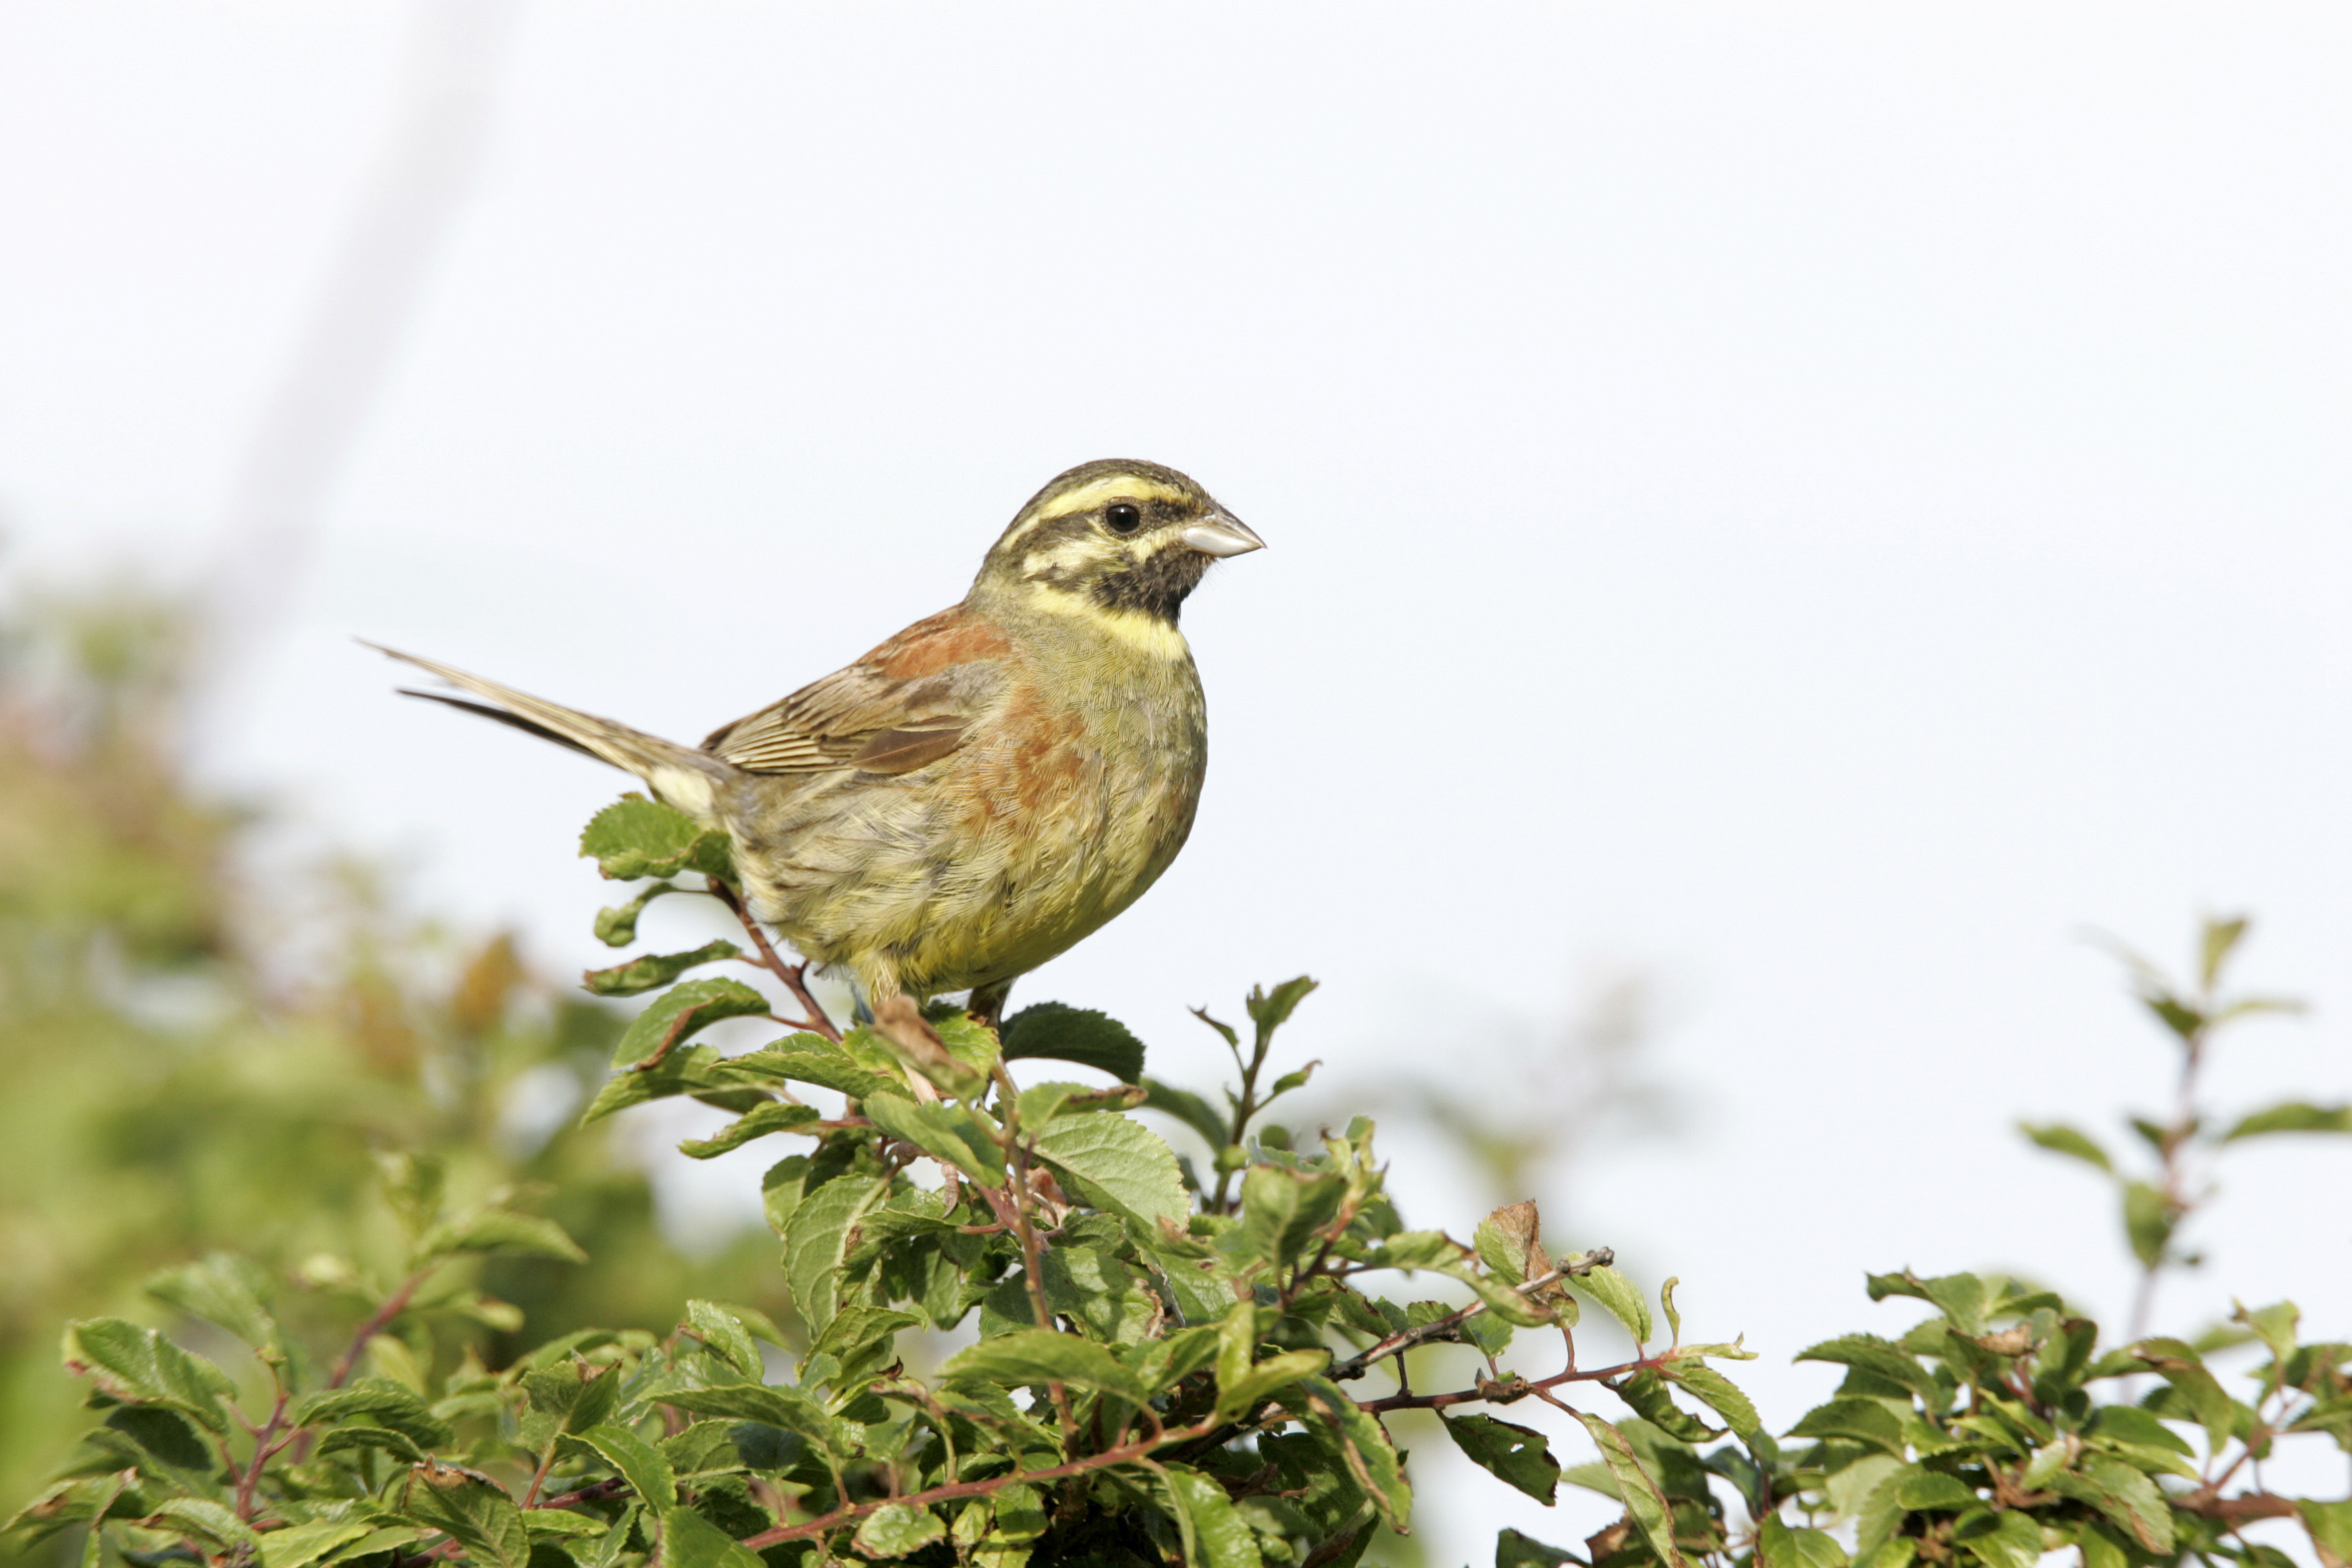 Cirl Bunting Conservation Project The Rspb